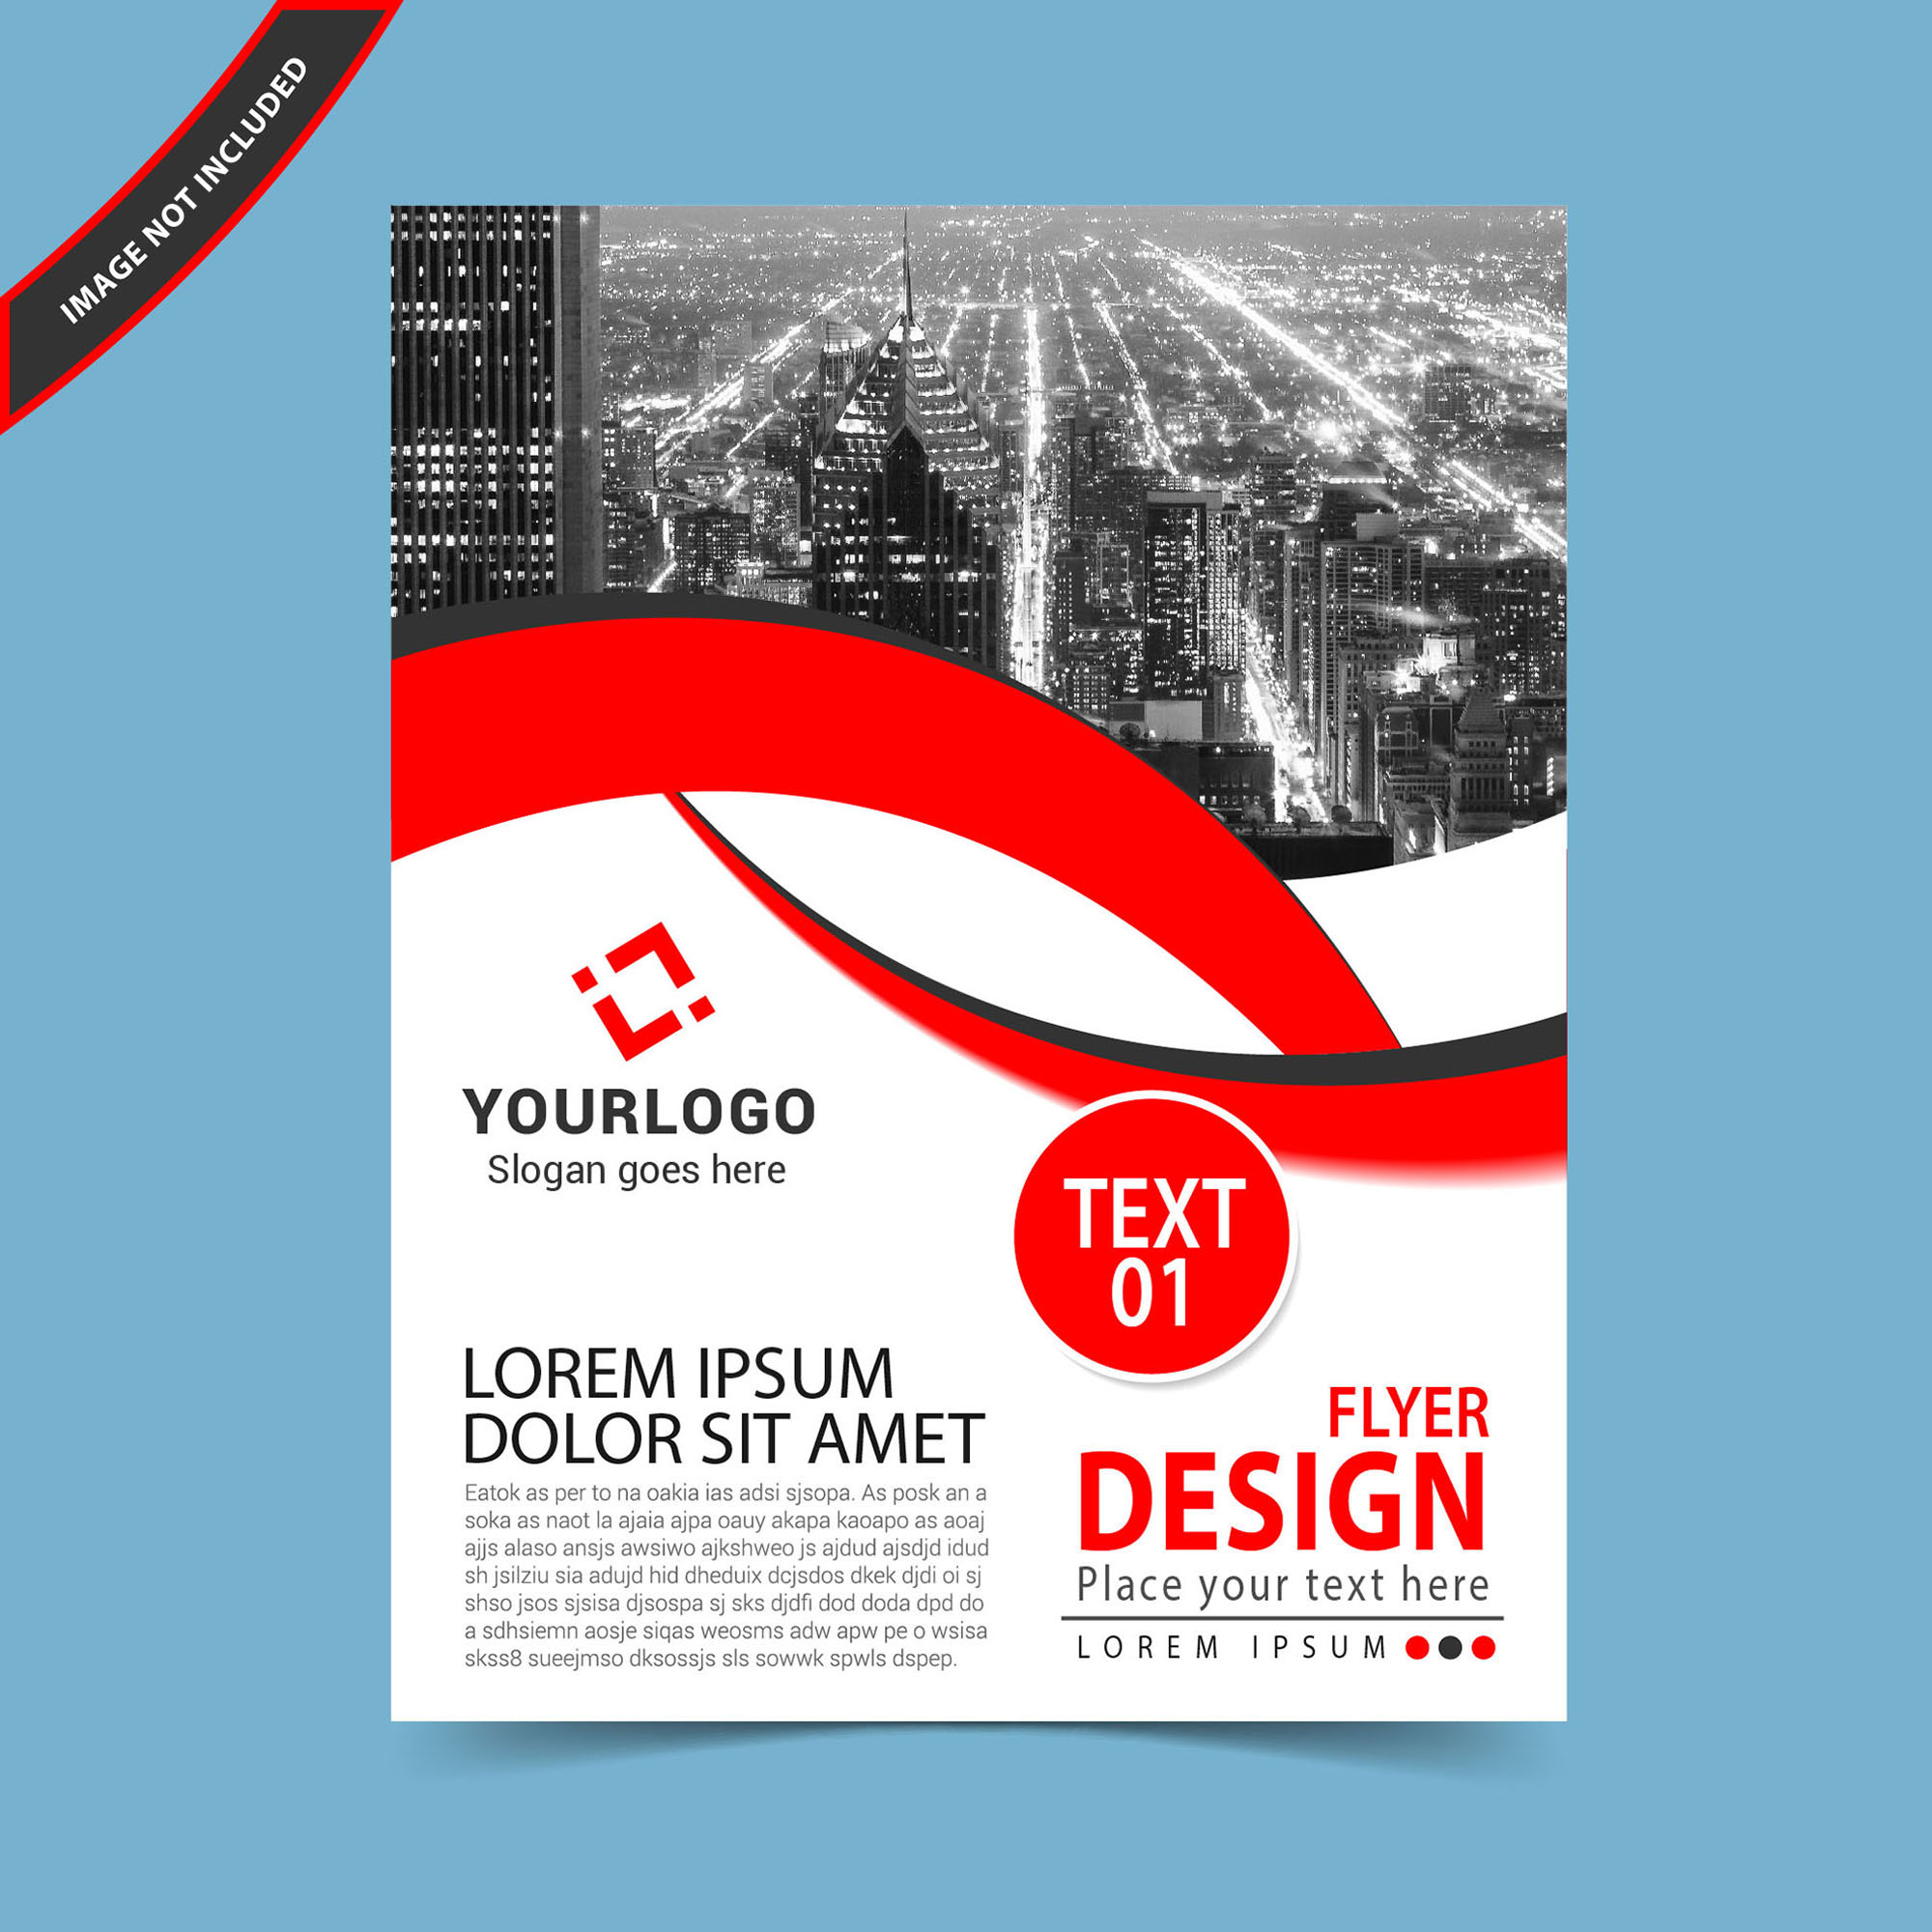 flyers flyer design flyer template free flyer design abstract business - Free Flyer Design Templates